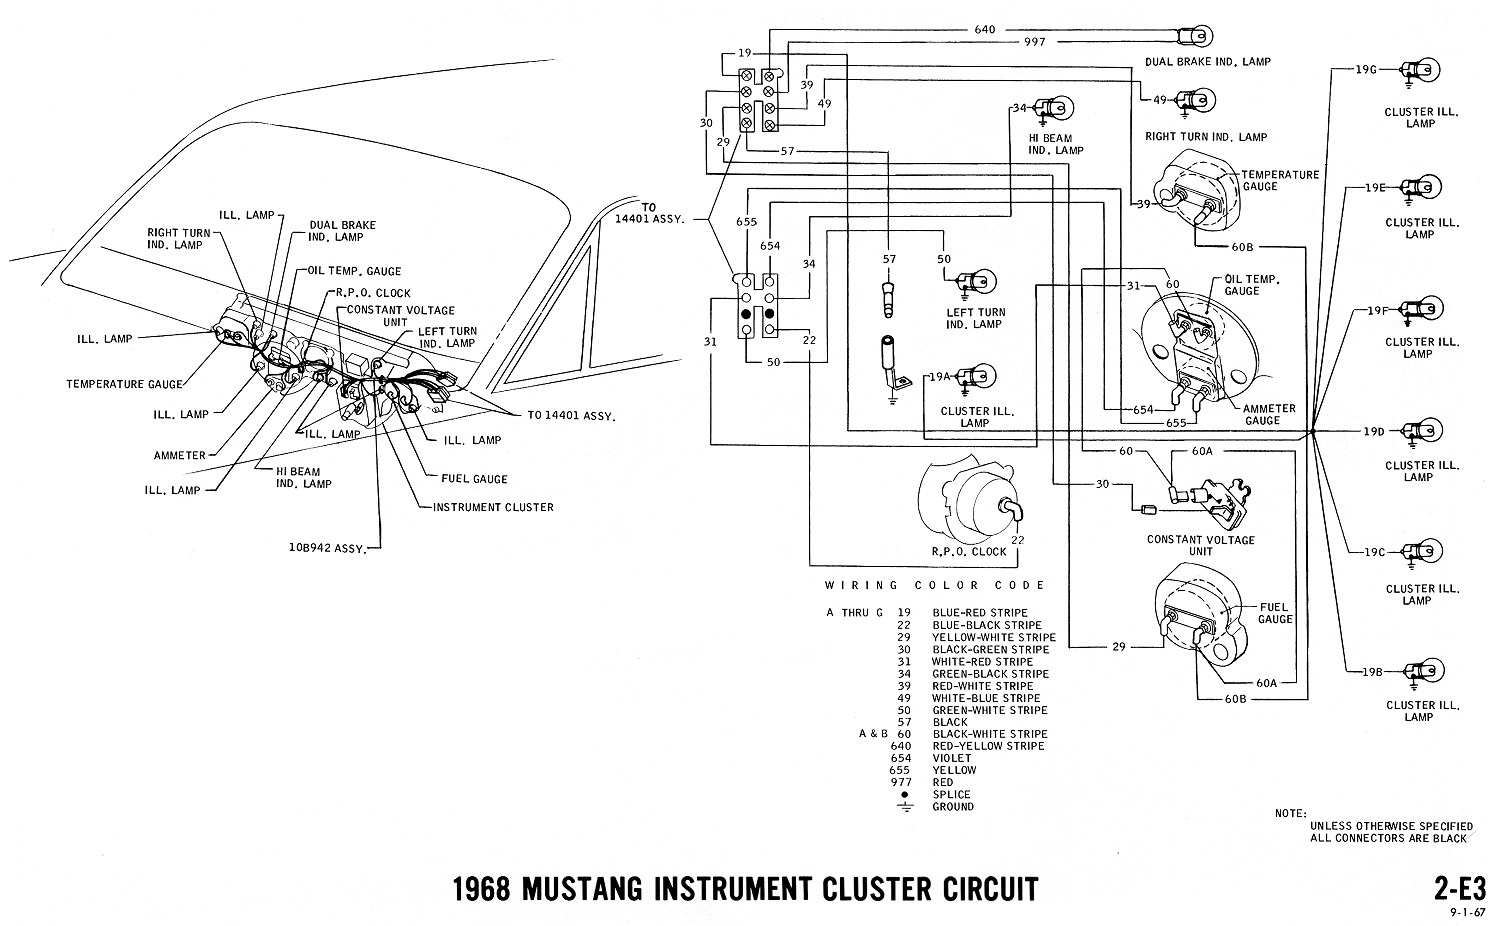 1968 mustang wiring diagram instruments 1968 mustang wiring diagrams and vacuum schematics average joe 1970 mustang radio wiring diagram at virtualis.co